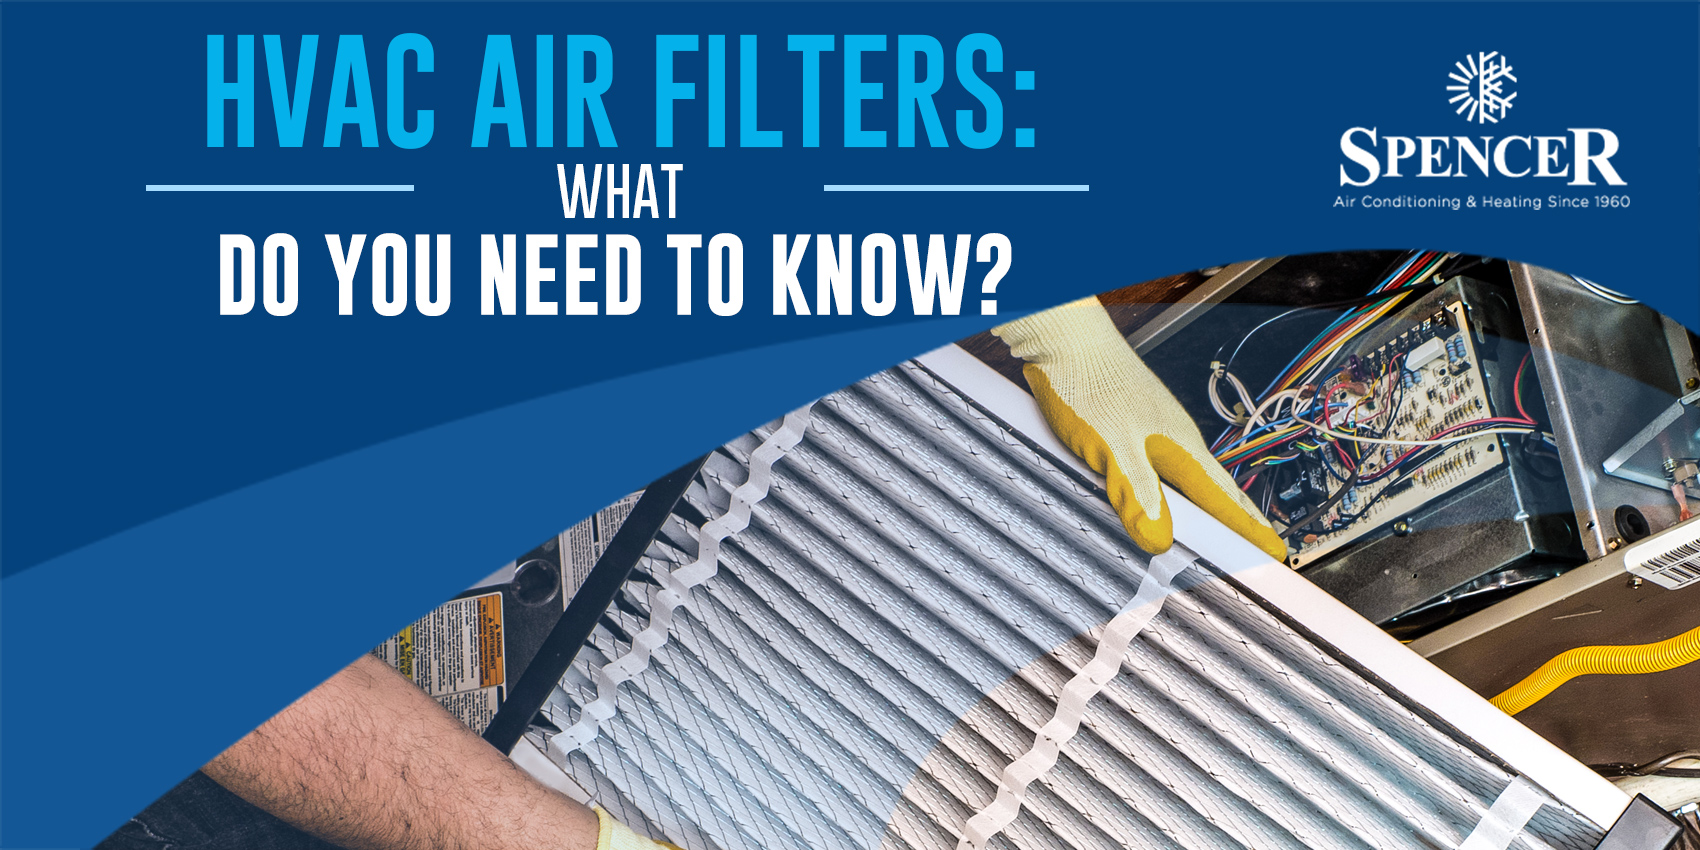 HVAC Air Filters: What Do You Need to Know?